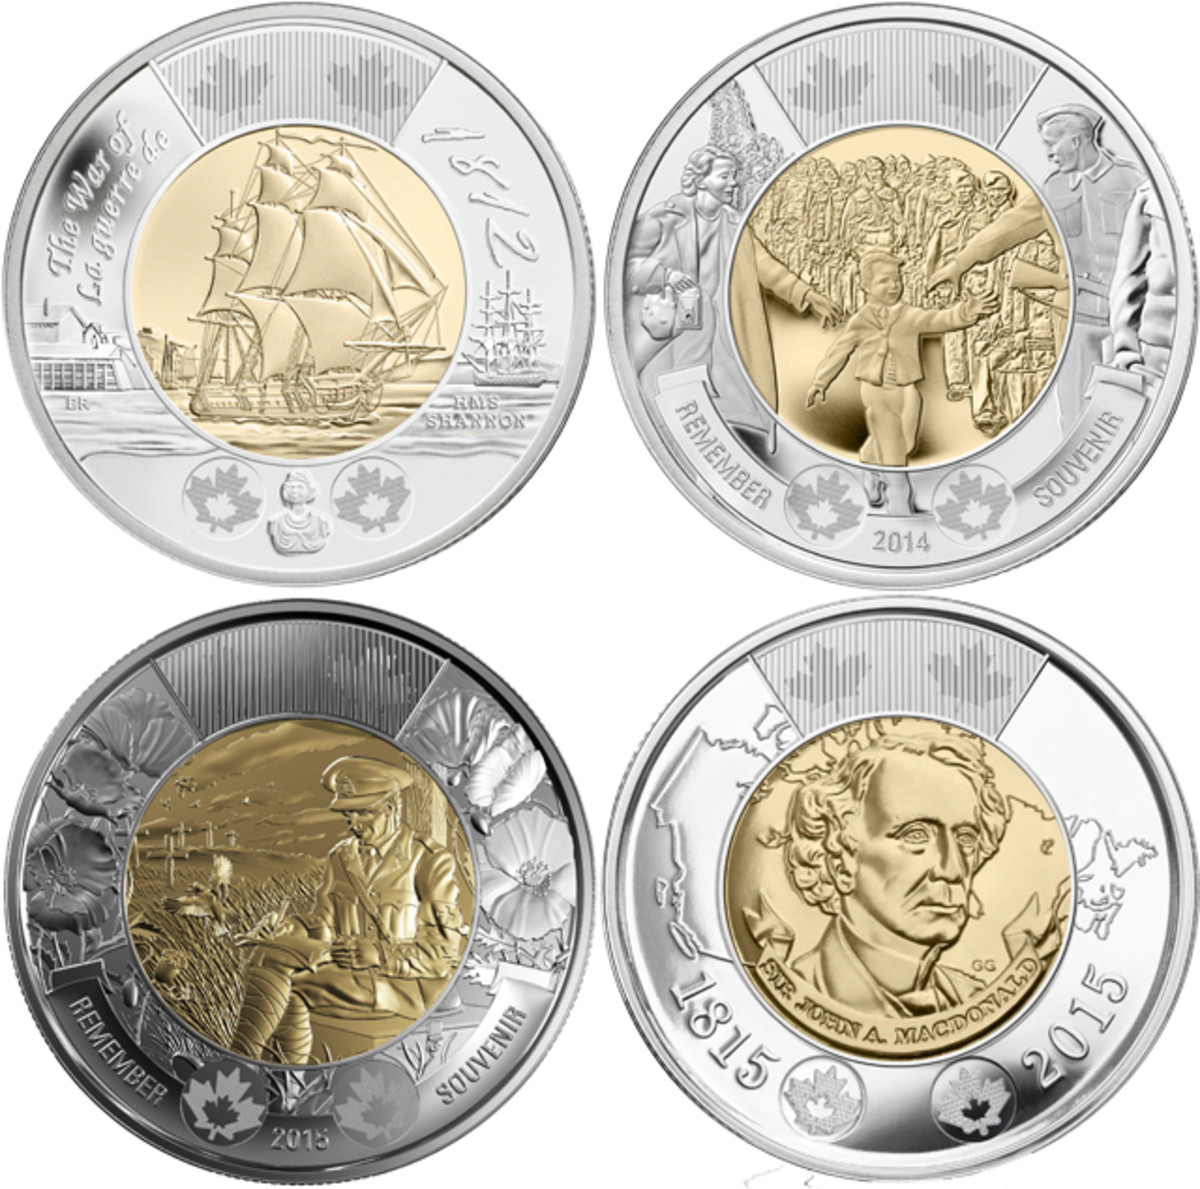 The reverse designs of Canada's 2012, 2014 and 2015 commemorative Toonies. All circulated alongside the traditional polar bear design. From to left clockwise: 200th anniversary of War of 1812, HMS Shannon, KM-1258; the outbreak of World War II, 'Wait for me Daddy', KM-1711; Sir John A. Macdonald, Father of Canadian Confederation; 100th anniversary of